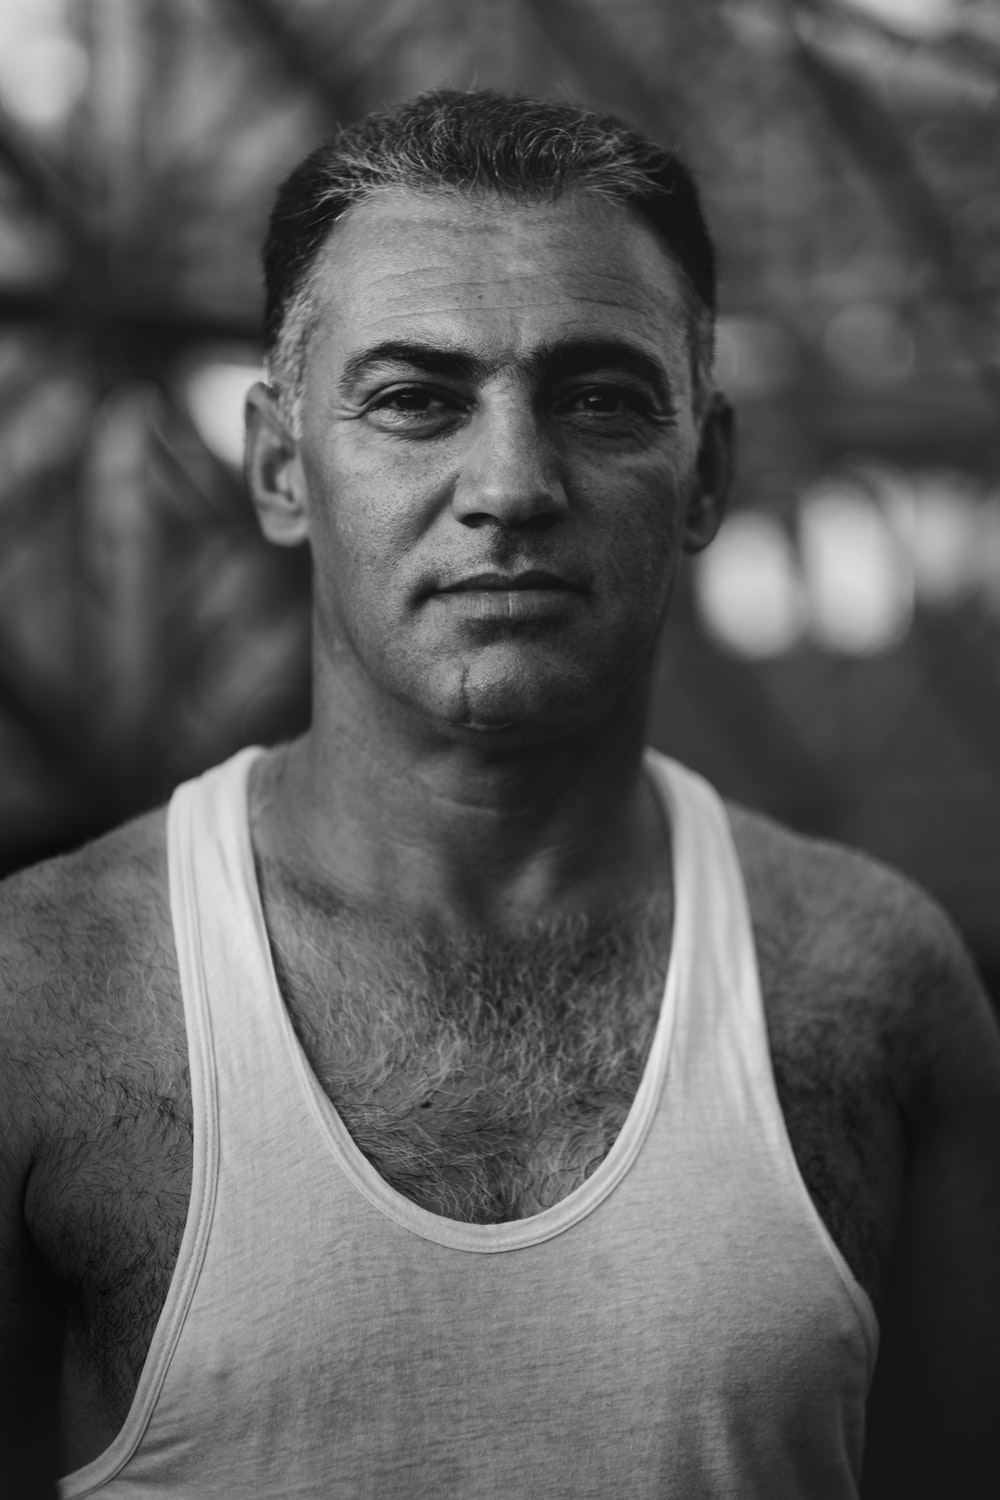 grayscale photography of man wearing tank top standing